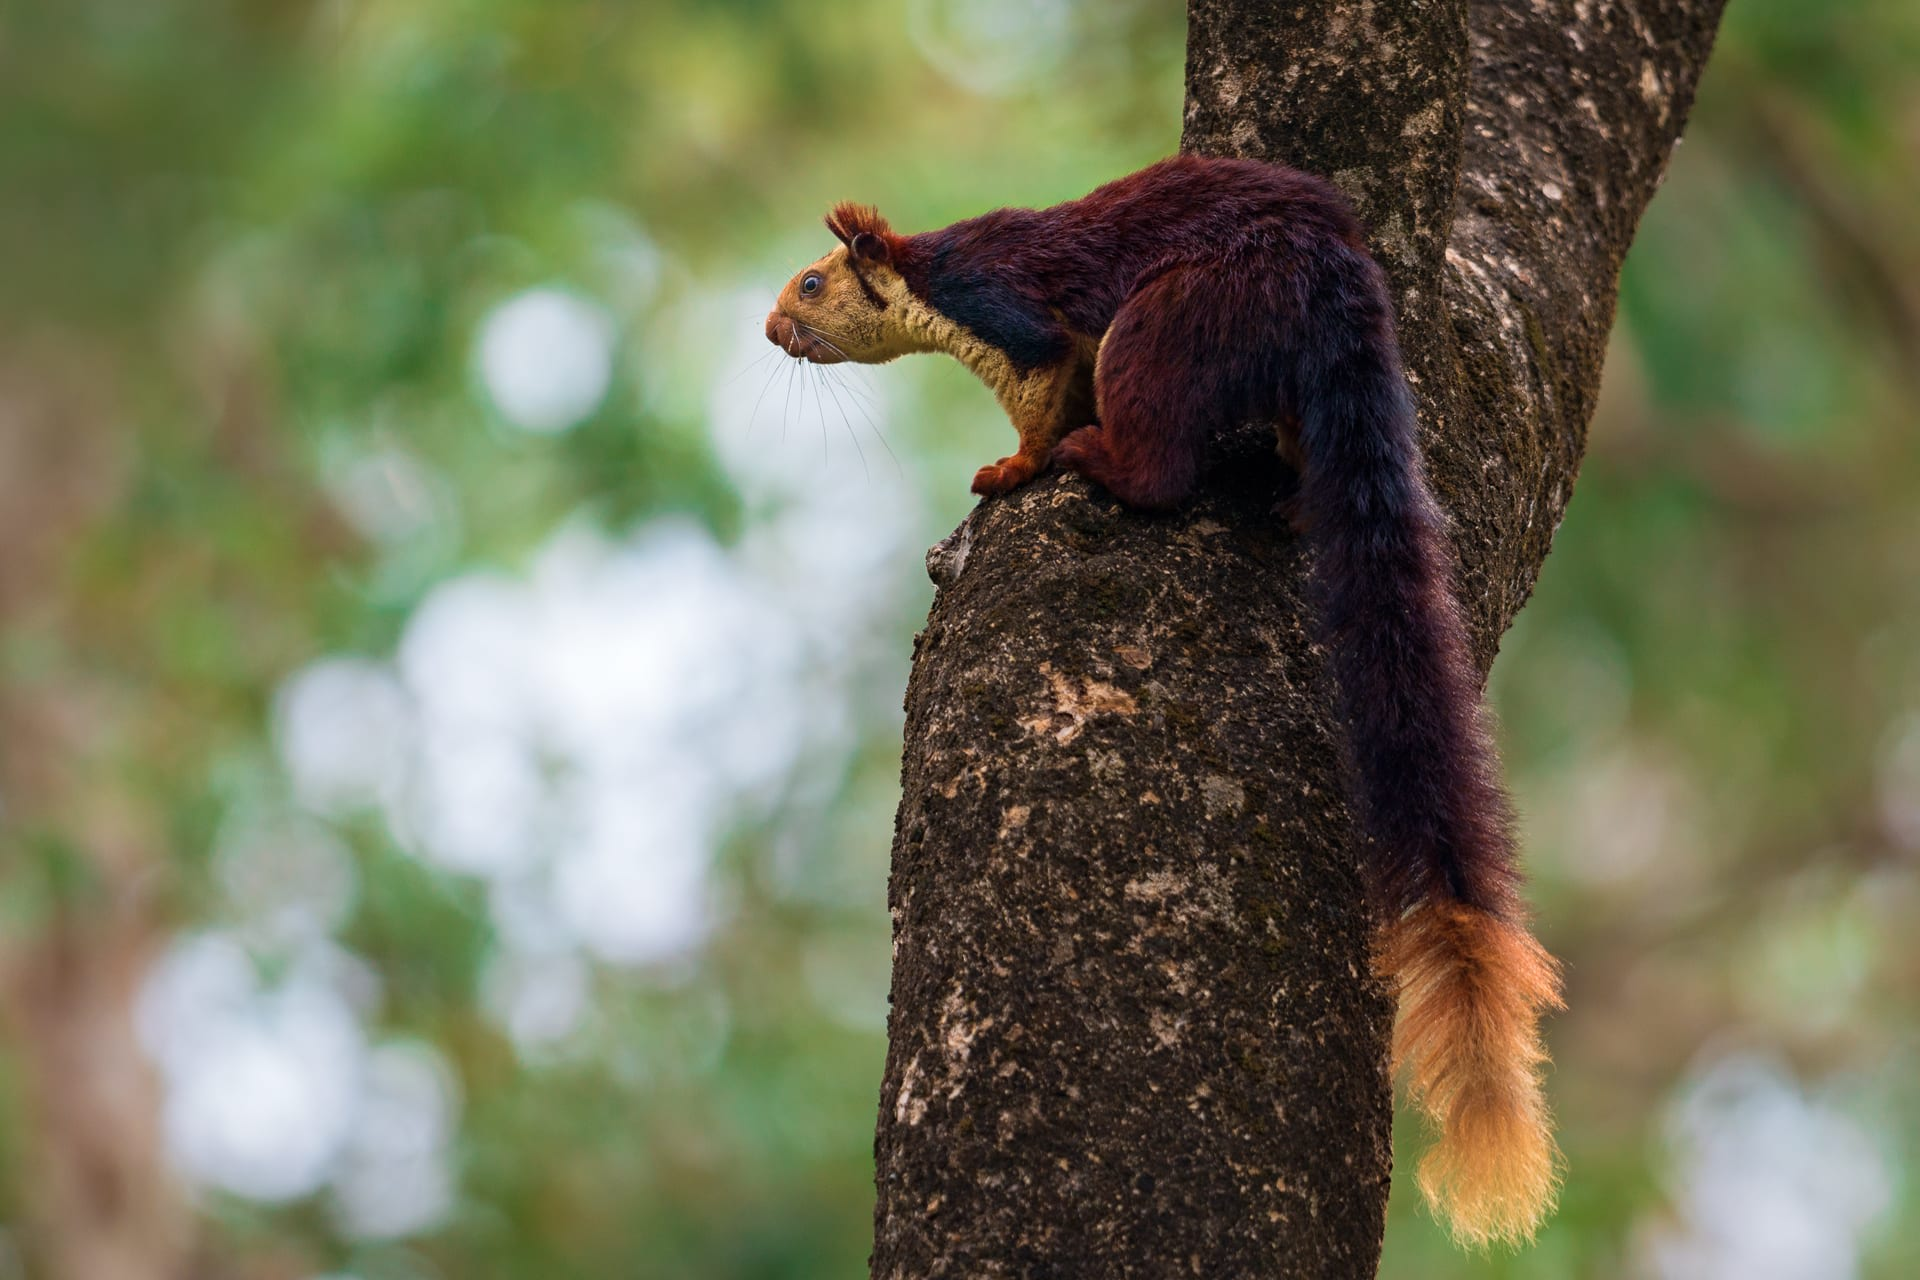 "The Indian giant squirrel (also called Malabar giant squirrel) is found only in India. This squirrel is easily encountered across the Western Ghats and parts of the Eastern Ghats and Satpura ranges. It is the state animal of Maharashtra where it is called ""shekru"" in Marathi.  Burgundy, maroon, black, cream – the fur of the Indian giant squirrel varies according to where it occurs, and from one individual to another in the same location. ""We visited a couple of sites and looked at many Indian giant squirrels in those sites. We found high variability in their coat colouration within these sites,"" says Rajamani. Her Sciurid Lab project uses published images from across the animal's range to describe the colour variations and morphs of these giant squirrels. ""Indian giant squirrels that you see as you go further south in India tend to be darker, with a lot of black fur on their backs. You don't see such dark individuals as much in northern Maharashtra. Even within a site, like the Anaimalais, fur colour can vary from one individual to another,"" she adds. Photo: Soumabrata Moulick  Cover photo: Saurabh Sawant"